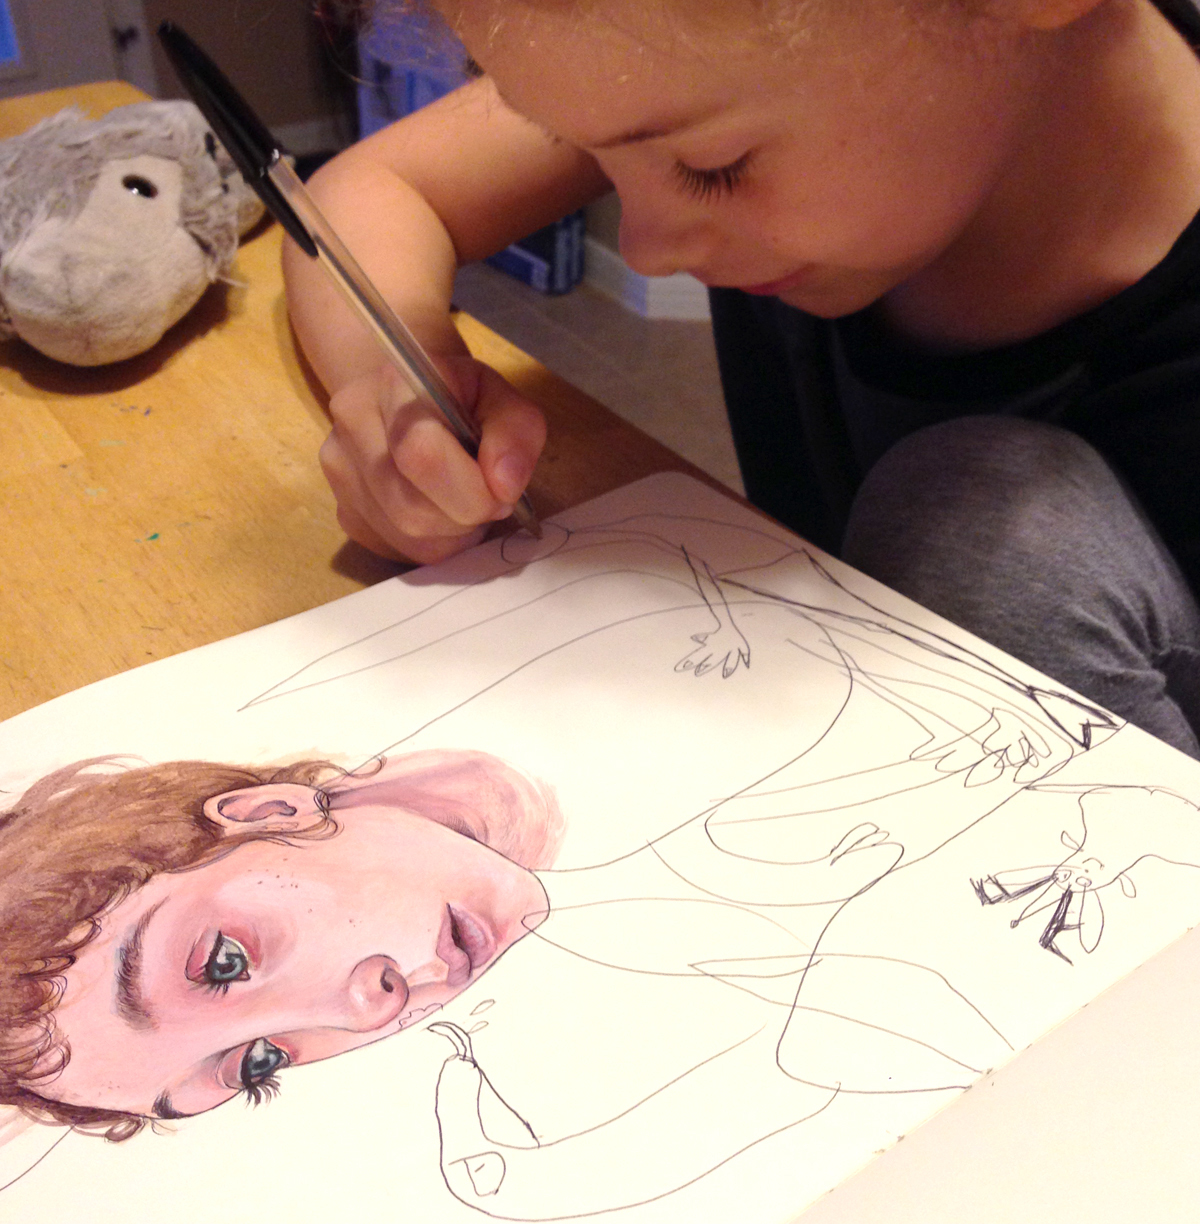 Mica's daugher, Myla Hendricks, adding finishing touches to Mica's illustration.